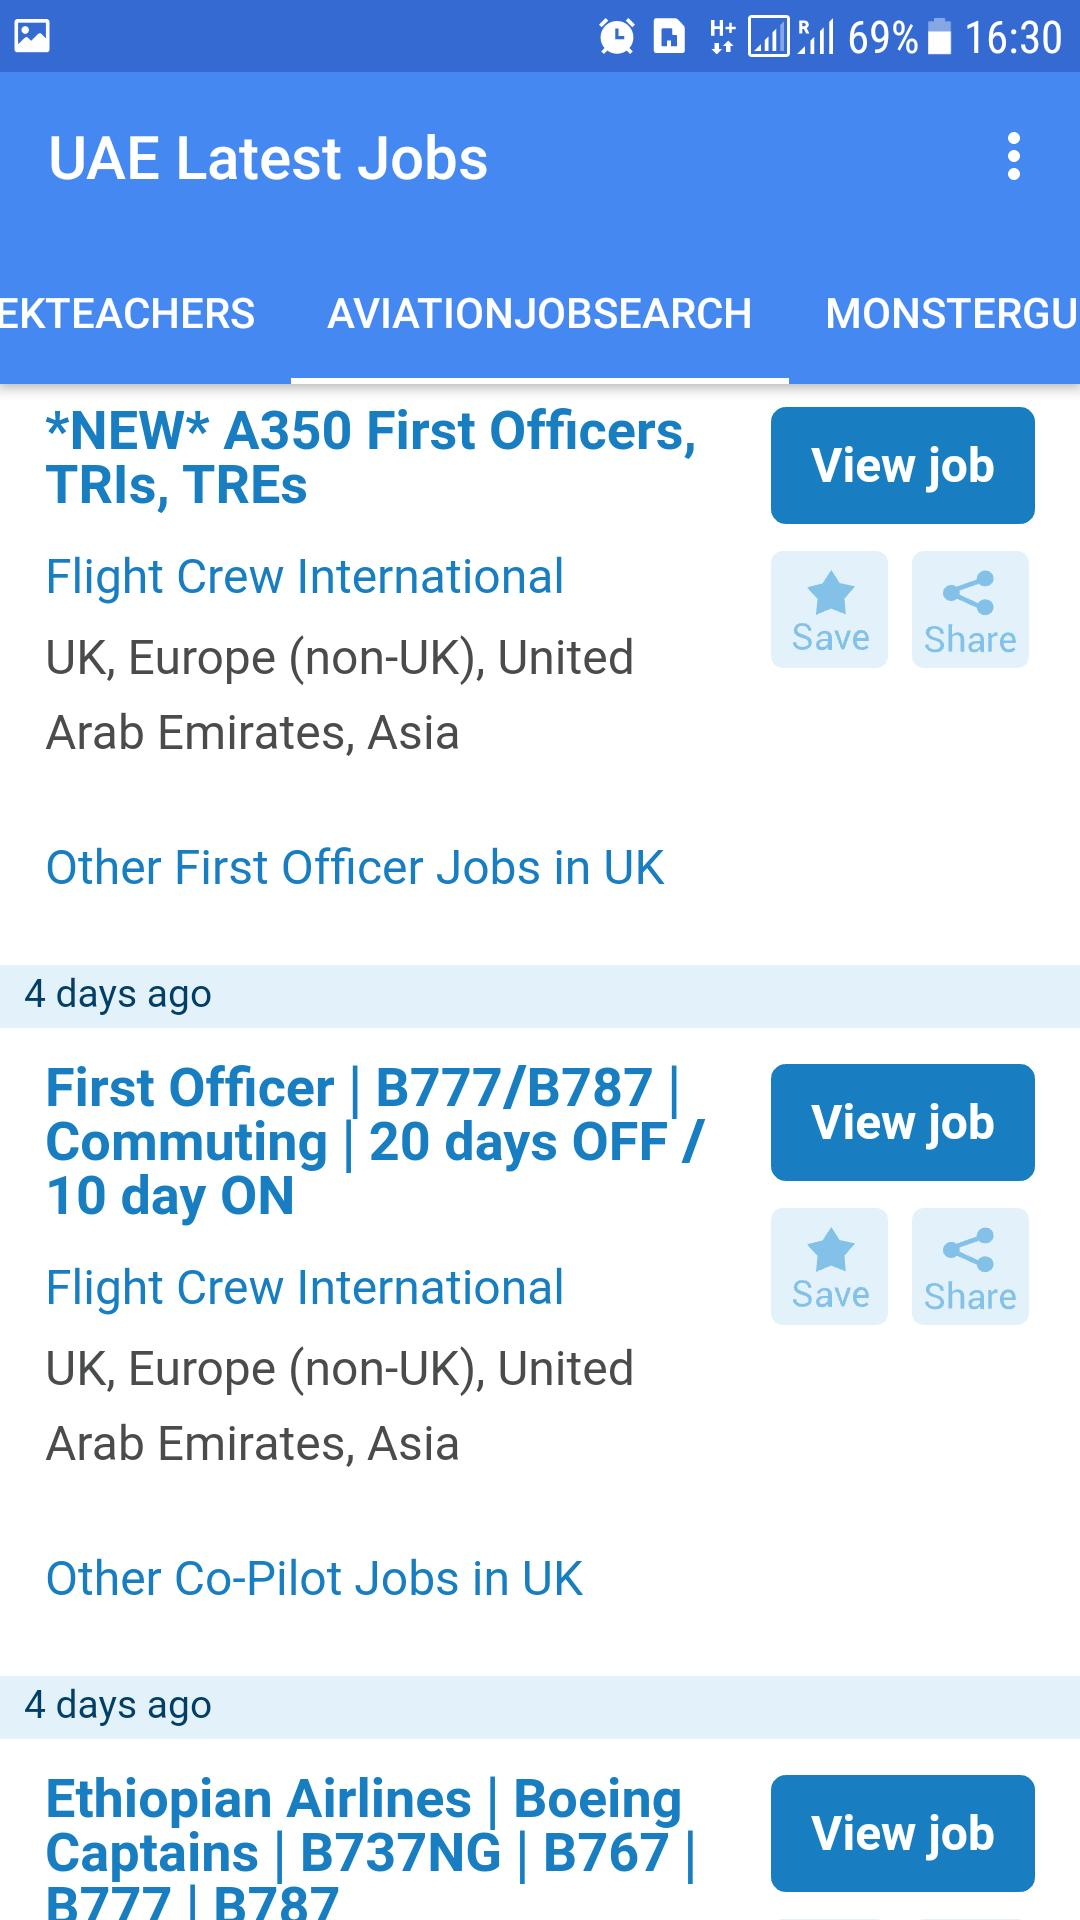 🇦🇪Jobs in UAE🇦🇪 for Android - APK Download